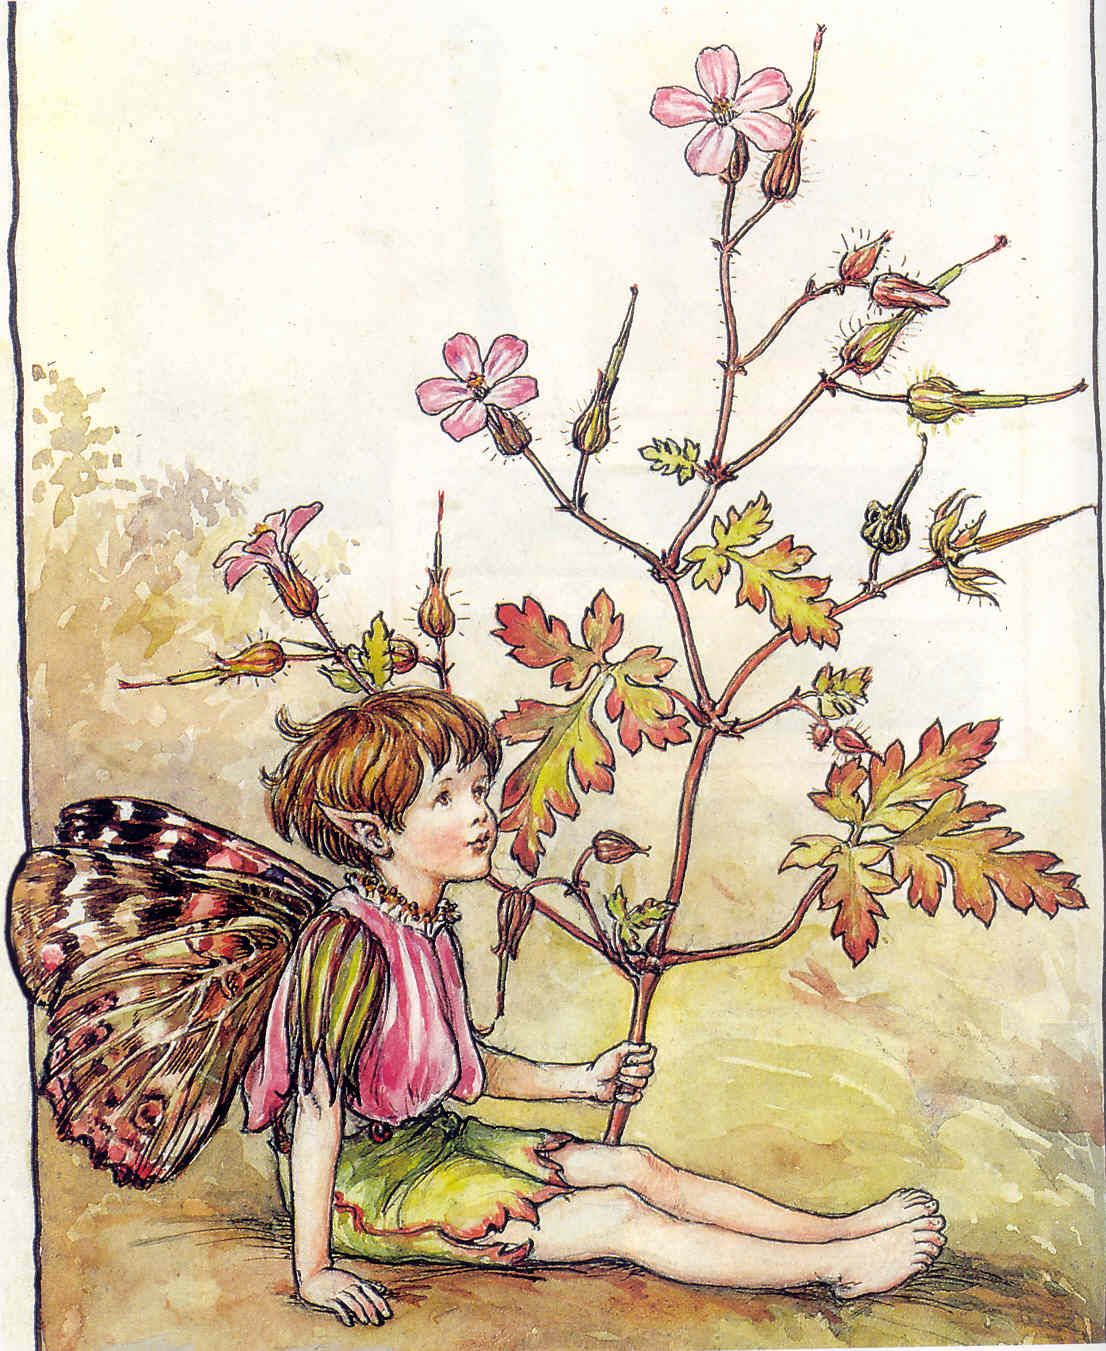 Cicely Mary Barker illustrations, beautiful